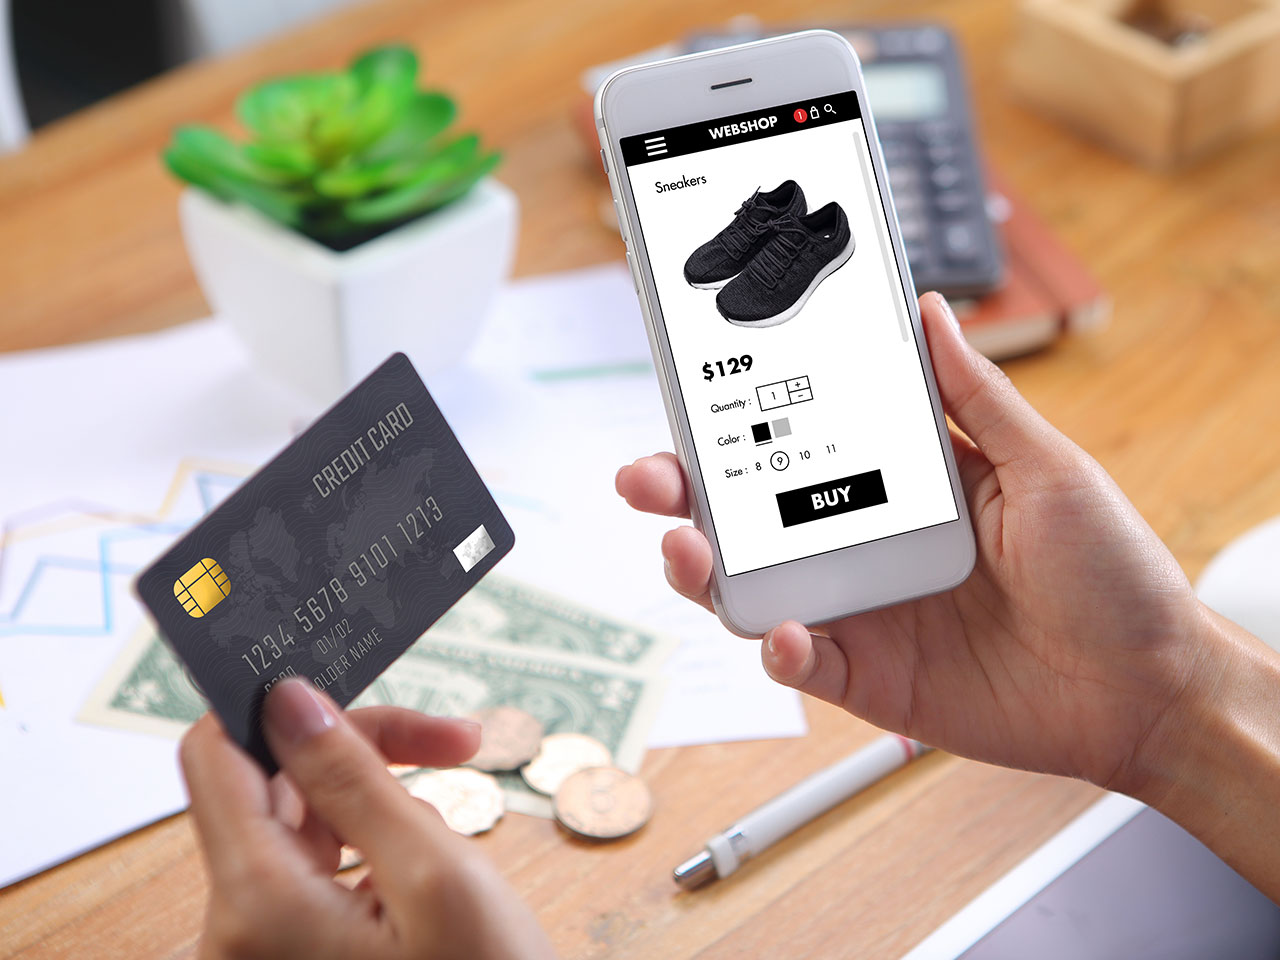 buying online using credit card